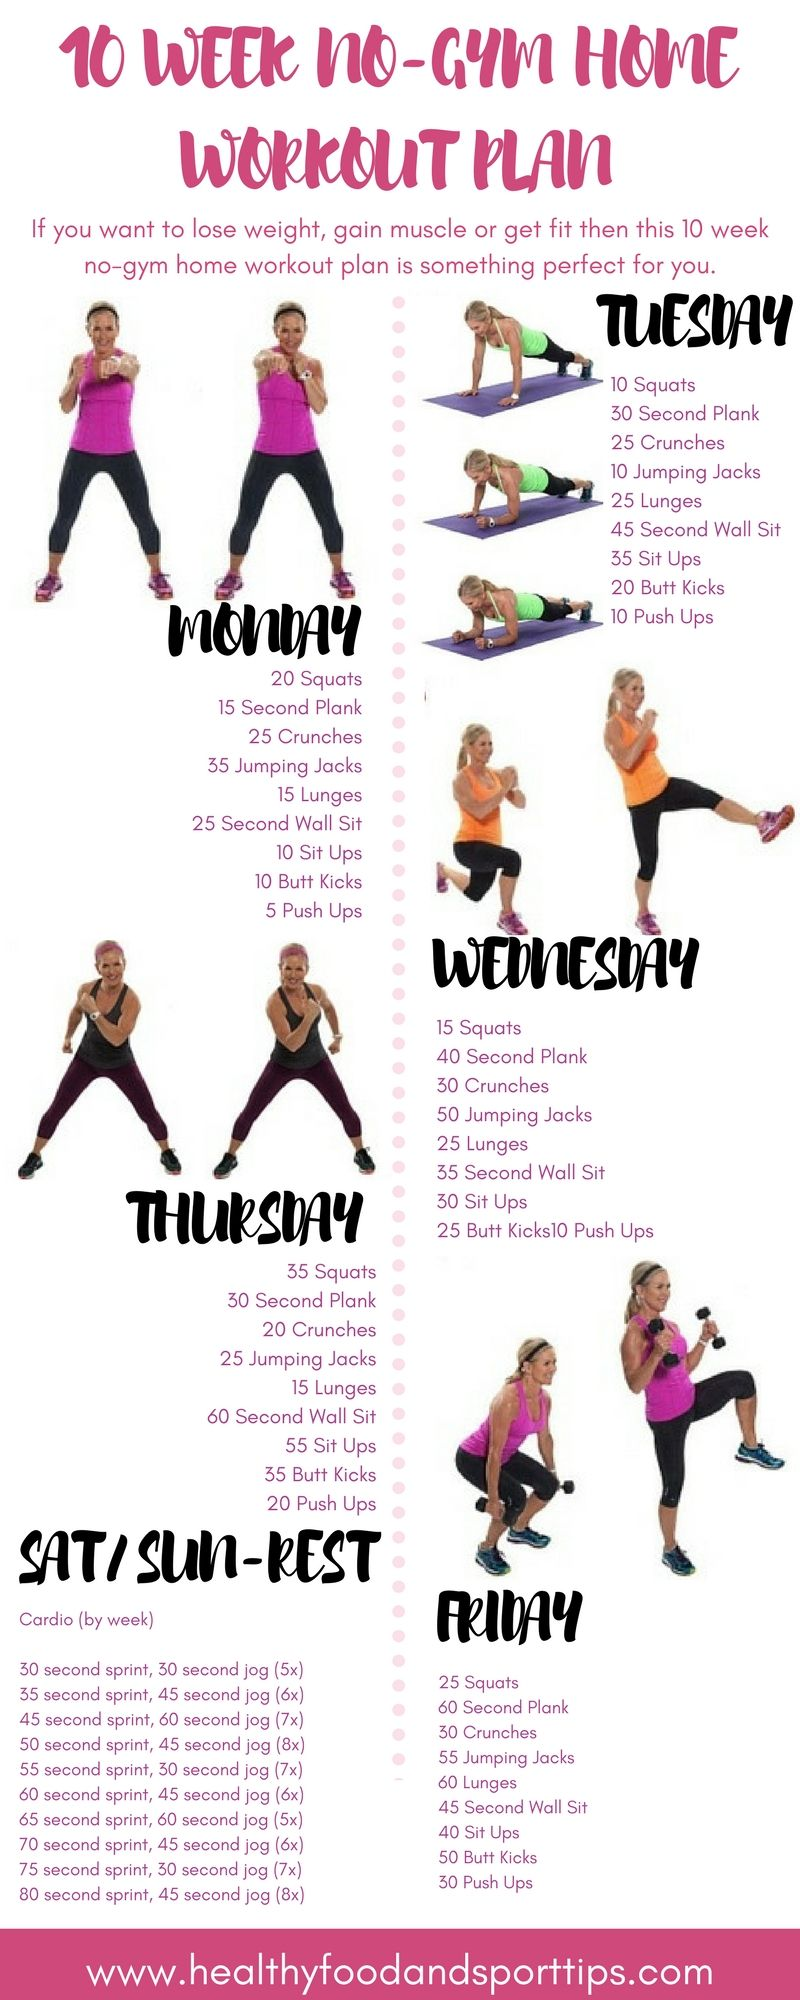 10 Week No Gym Home Workout Plan At Home Workout Plan At Home Workouts Workout Plan